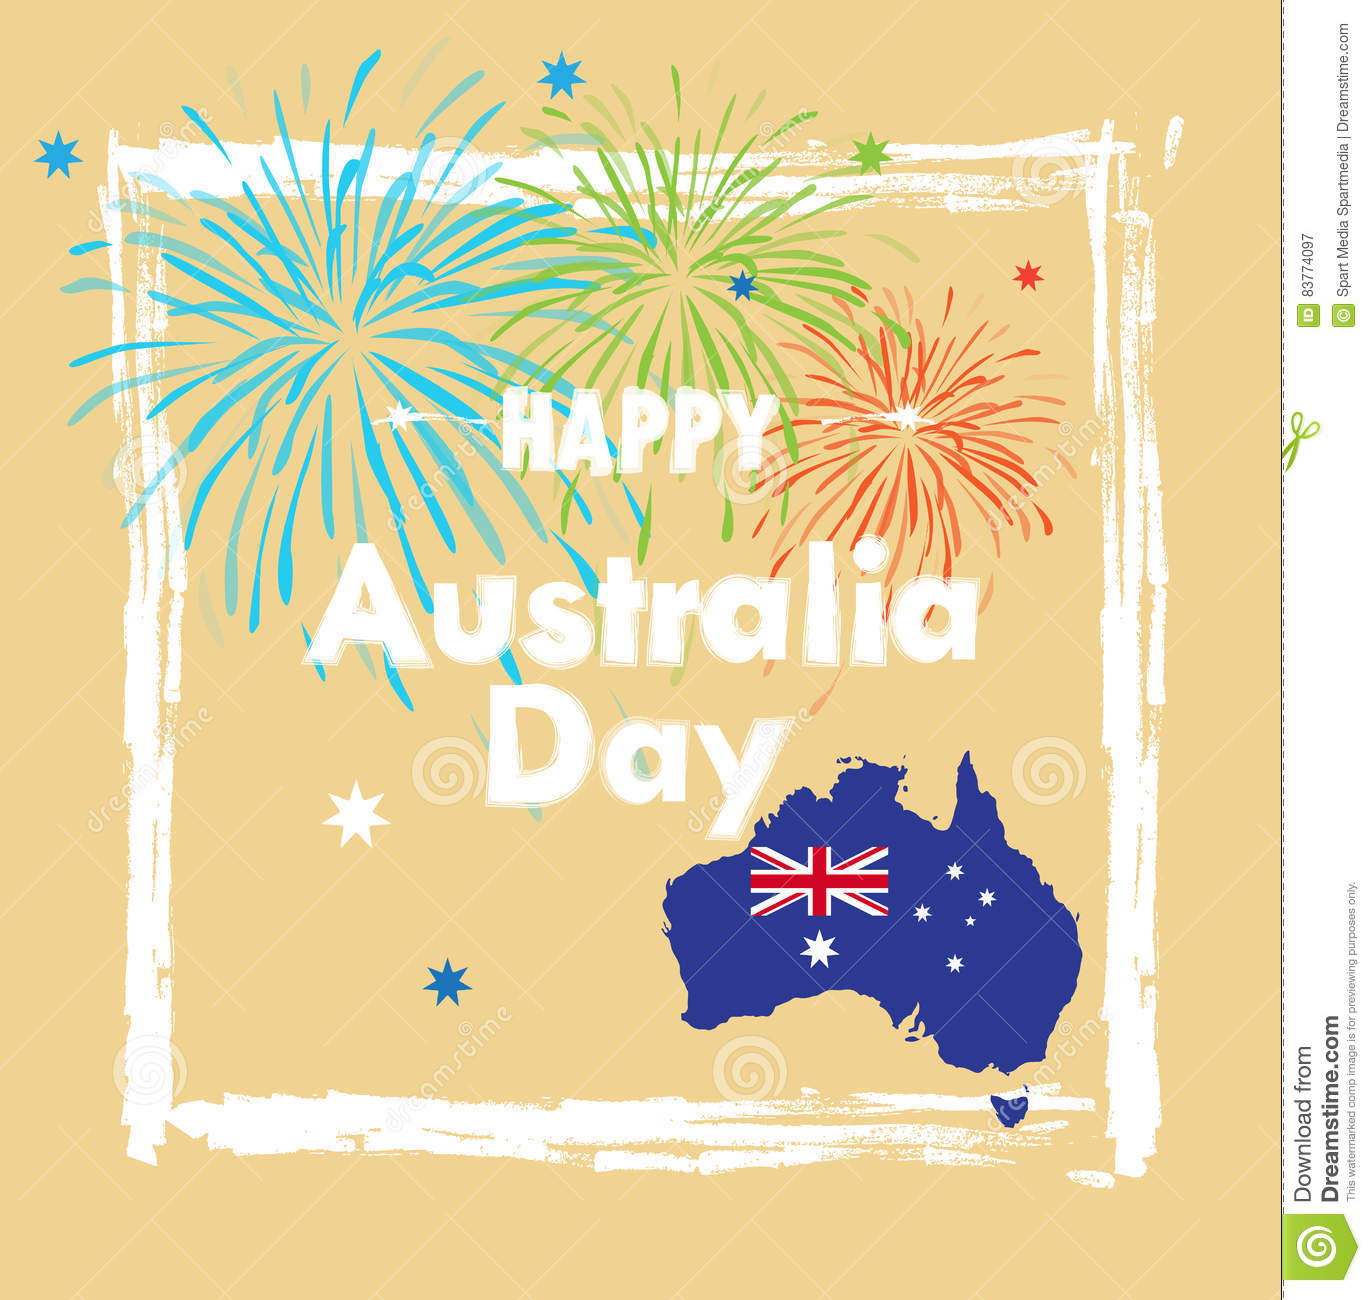 Map Of Australia 26th Parallel.Australia Day Stock Vector Illustration Of Asian 2017 83774097